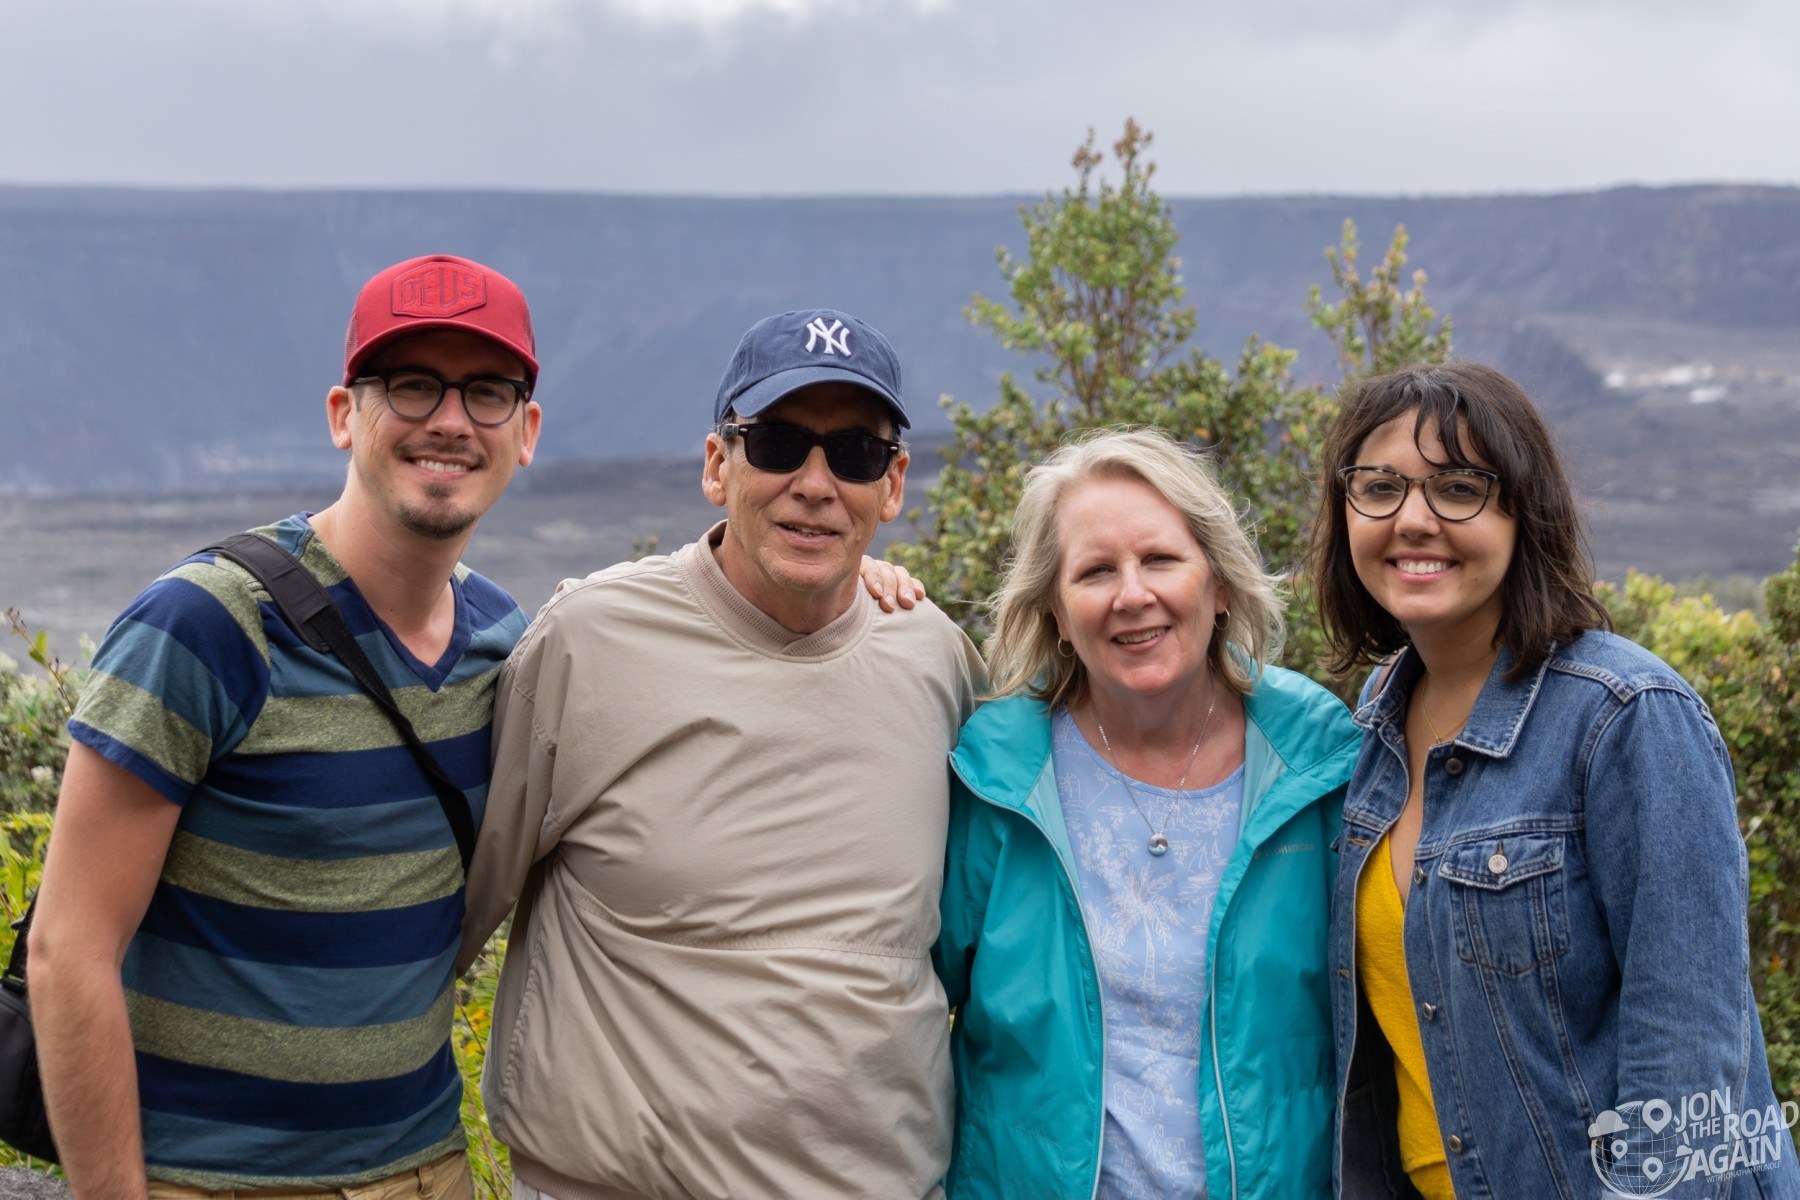 Family photo at Volcano National Park